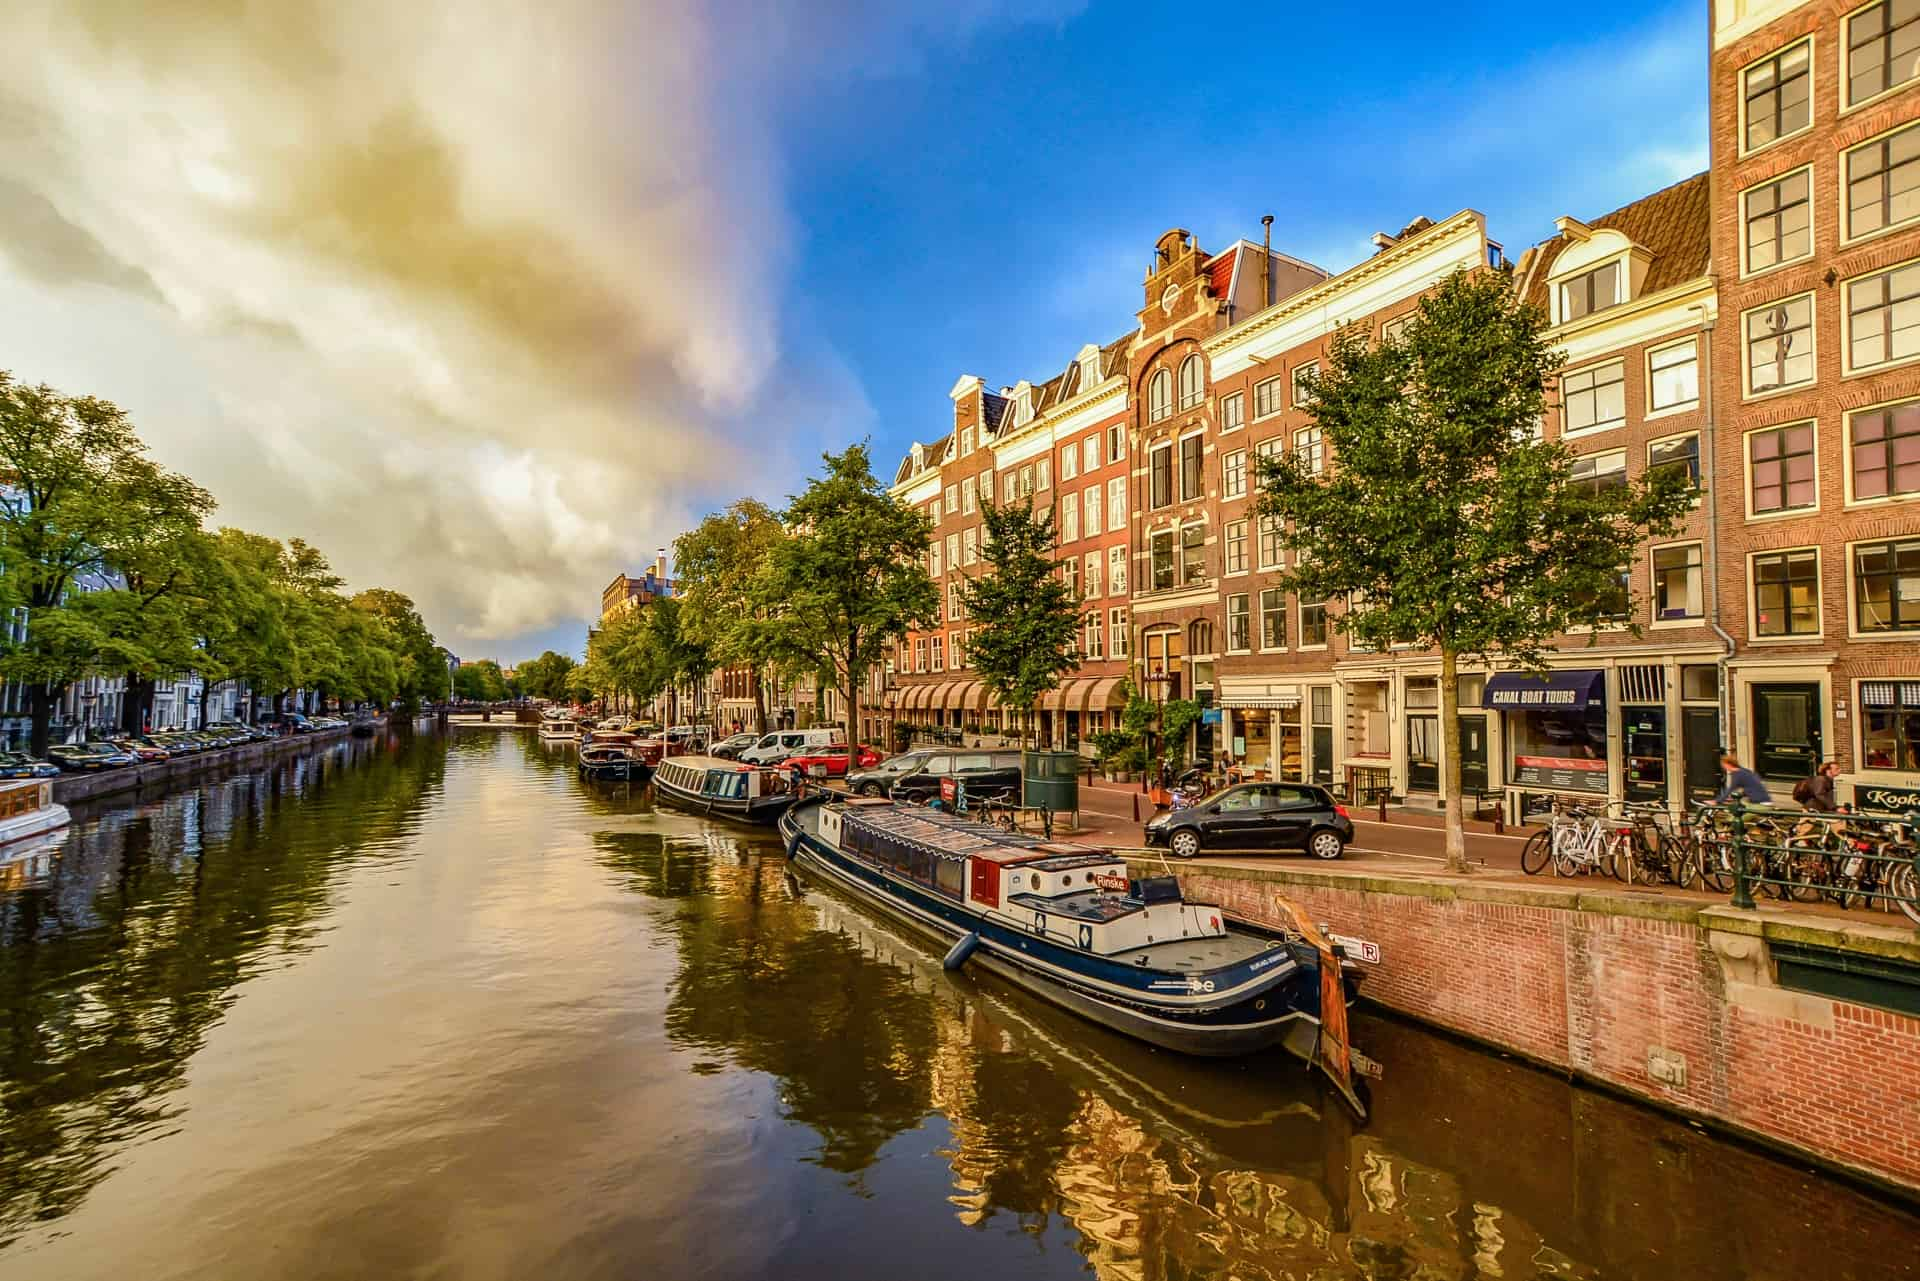 storm-approaching-in-amsterdam